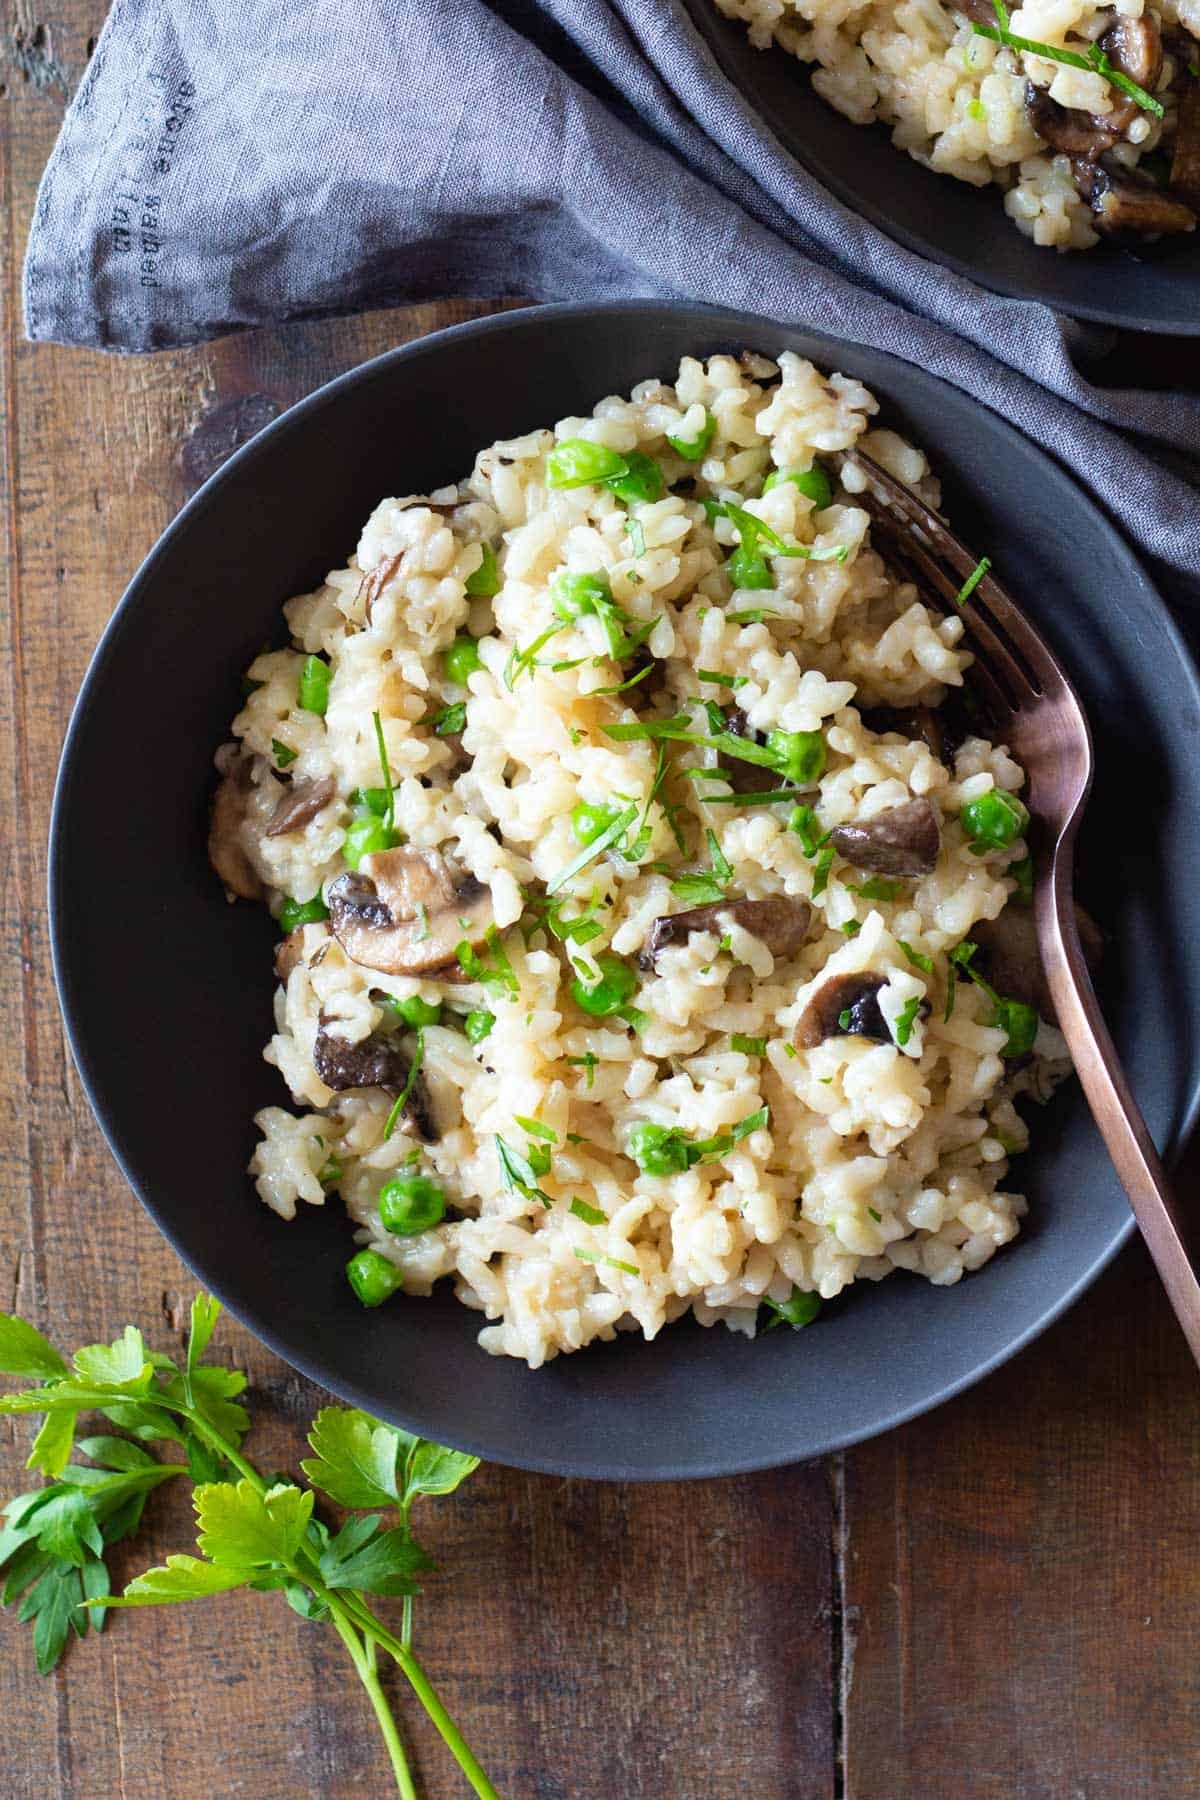 Mushroom and Pea Risotto in a grey bowl on a wooden table